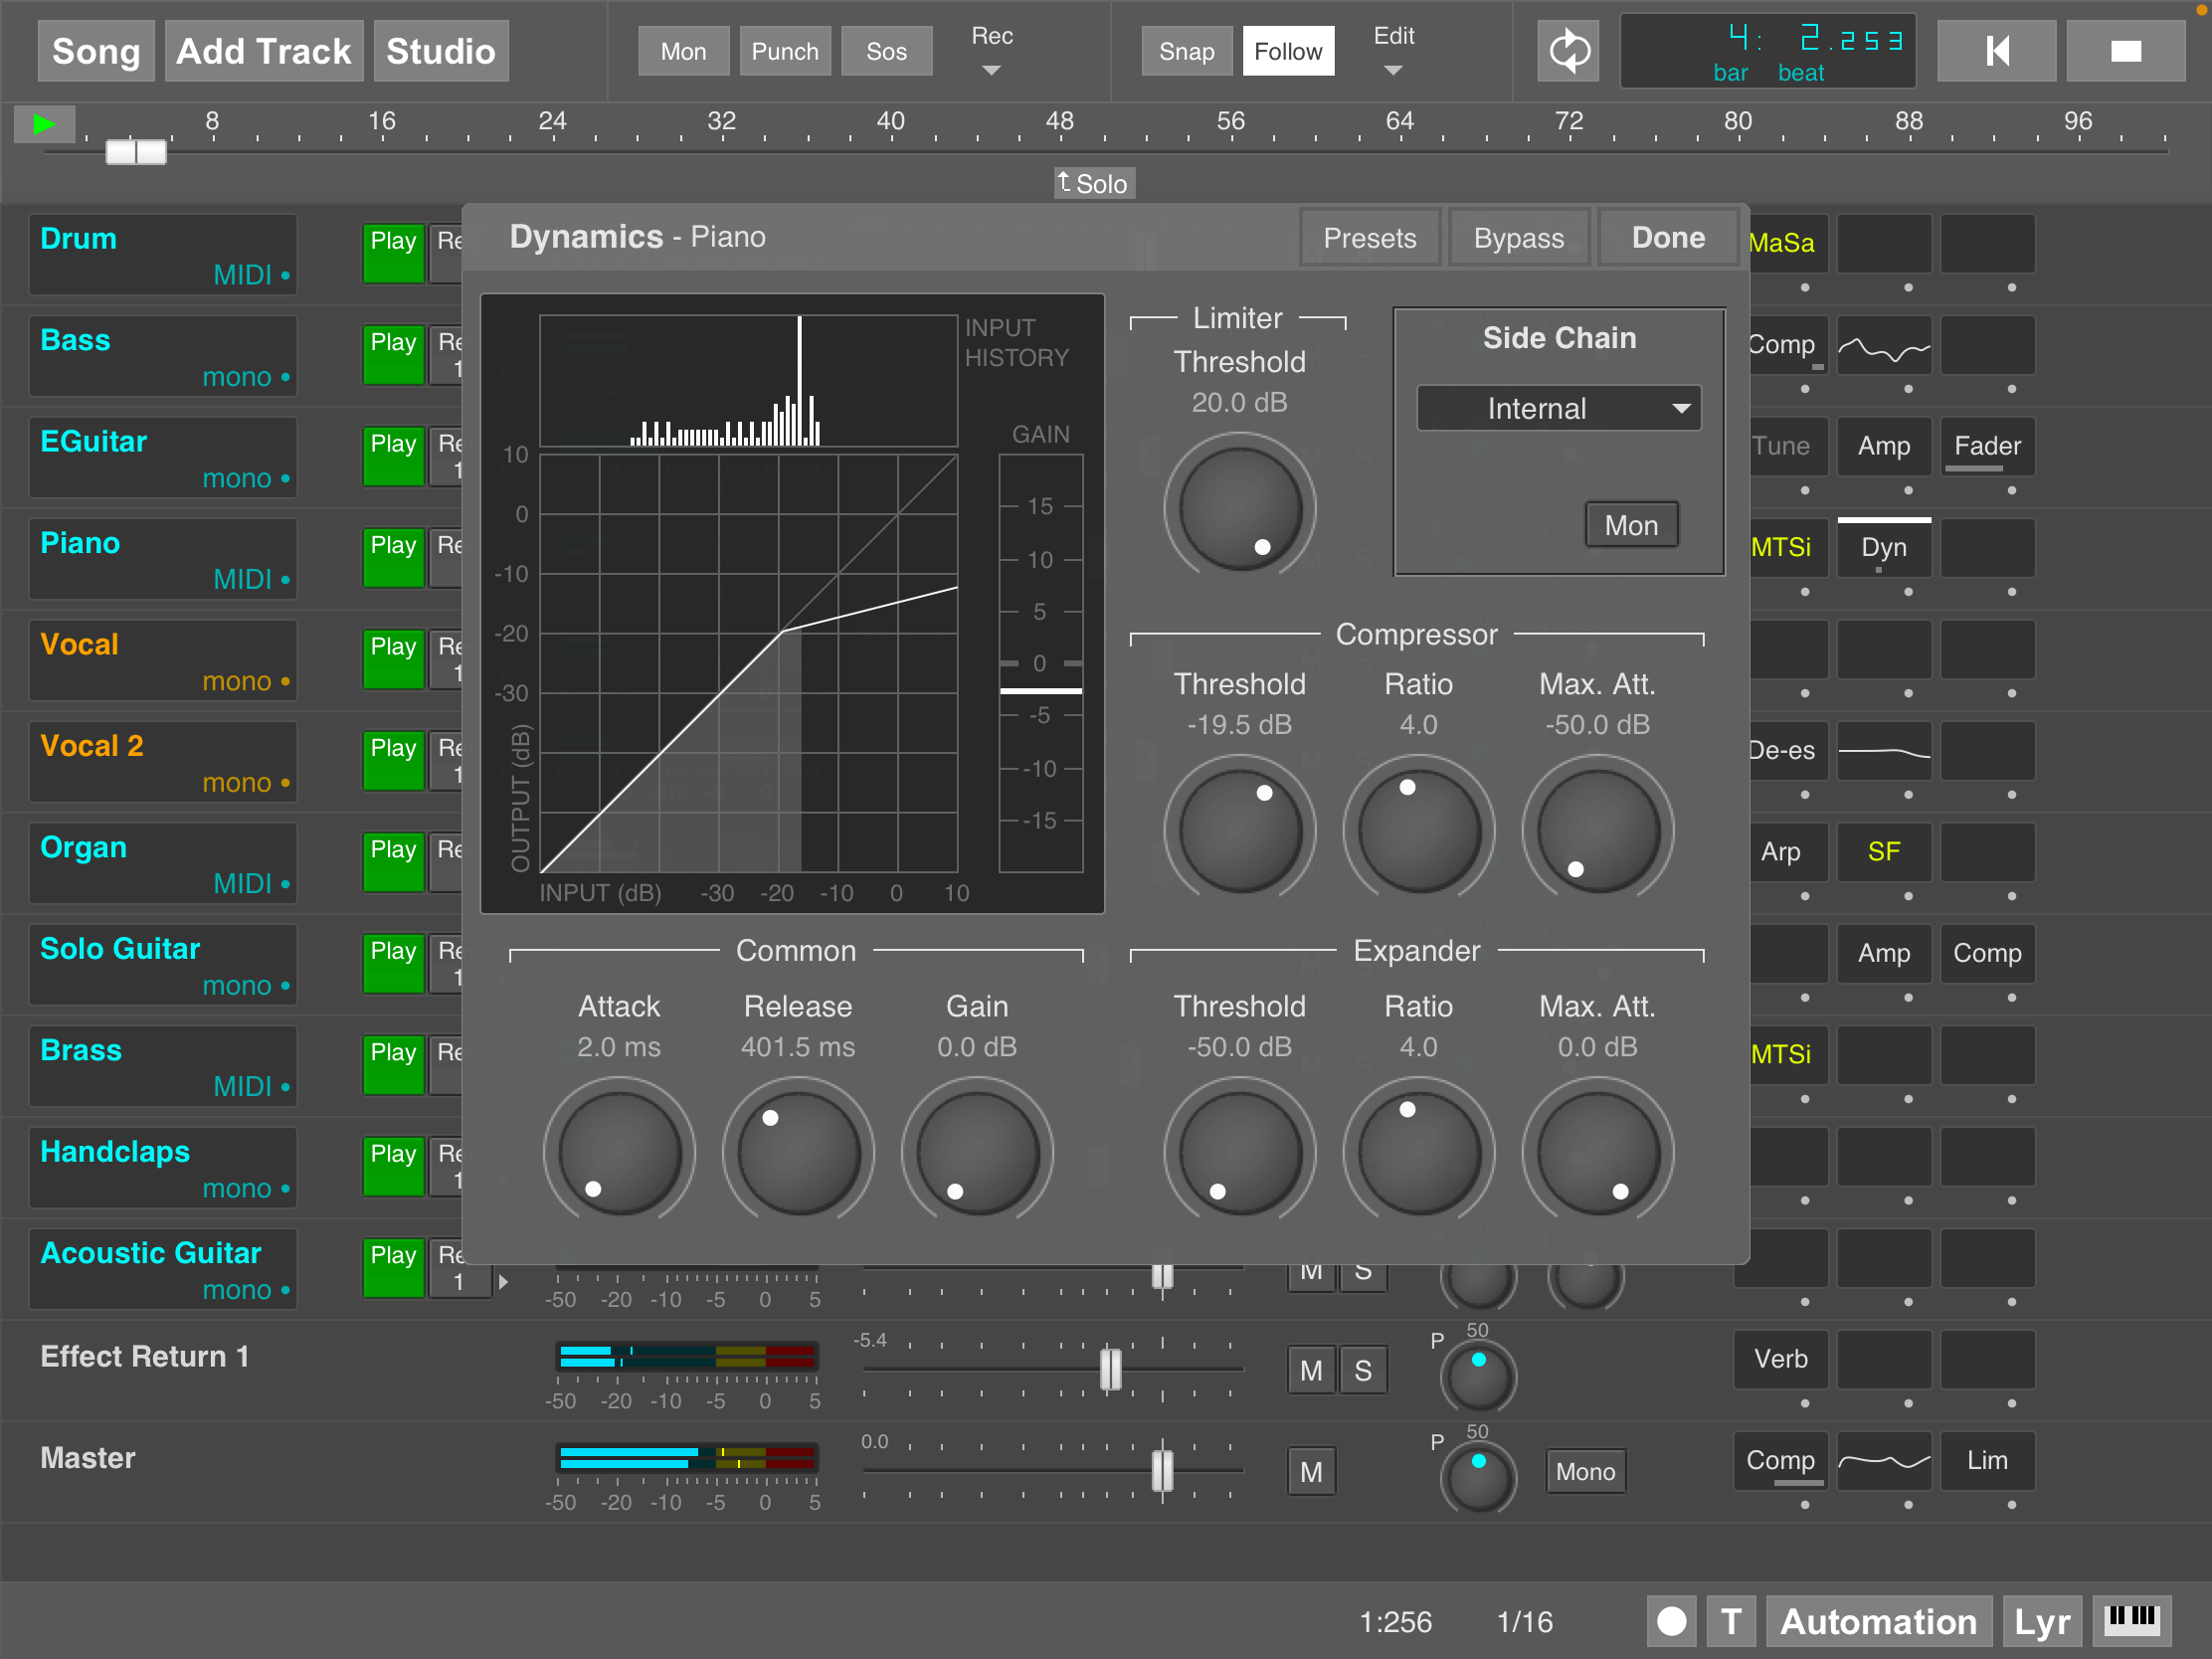 MultitrackStudio for iPad - Dynamics effect